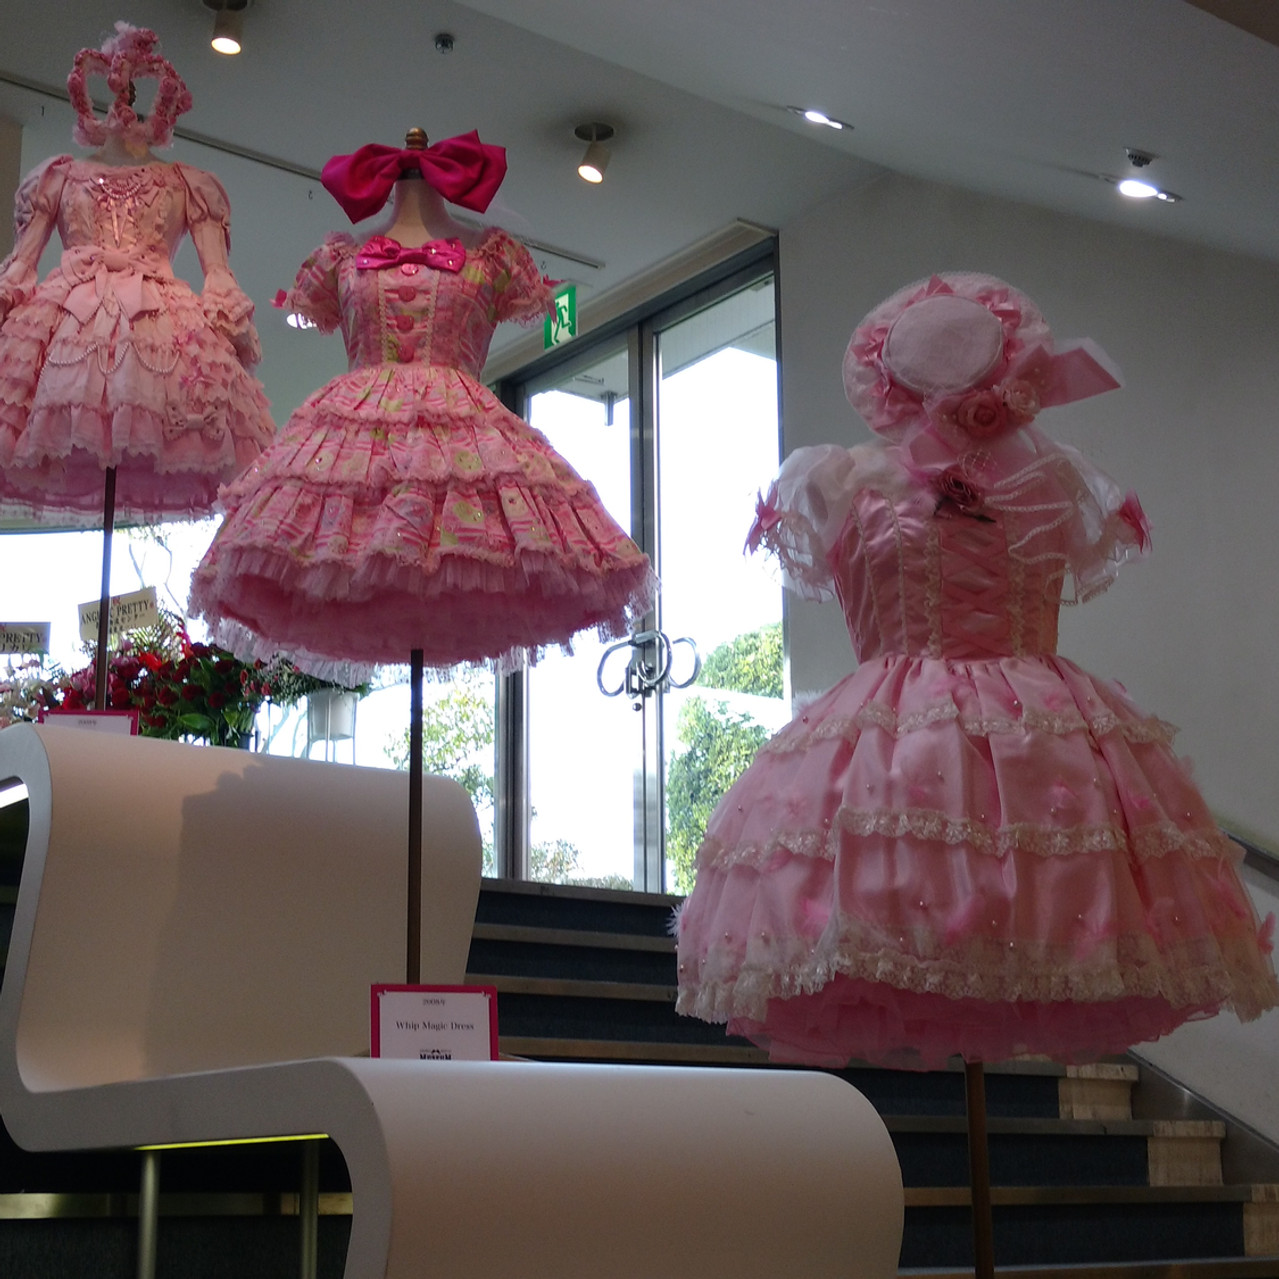 At the top floor, 3 AP dresses greet you as you walk up!